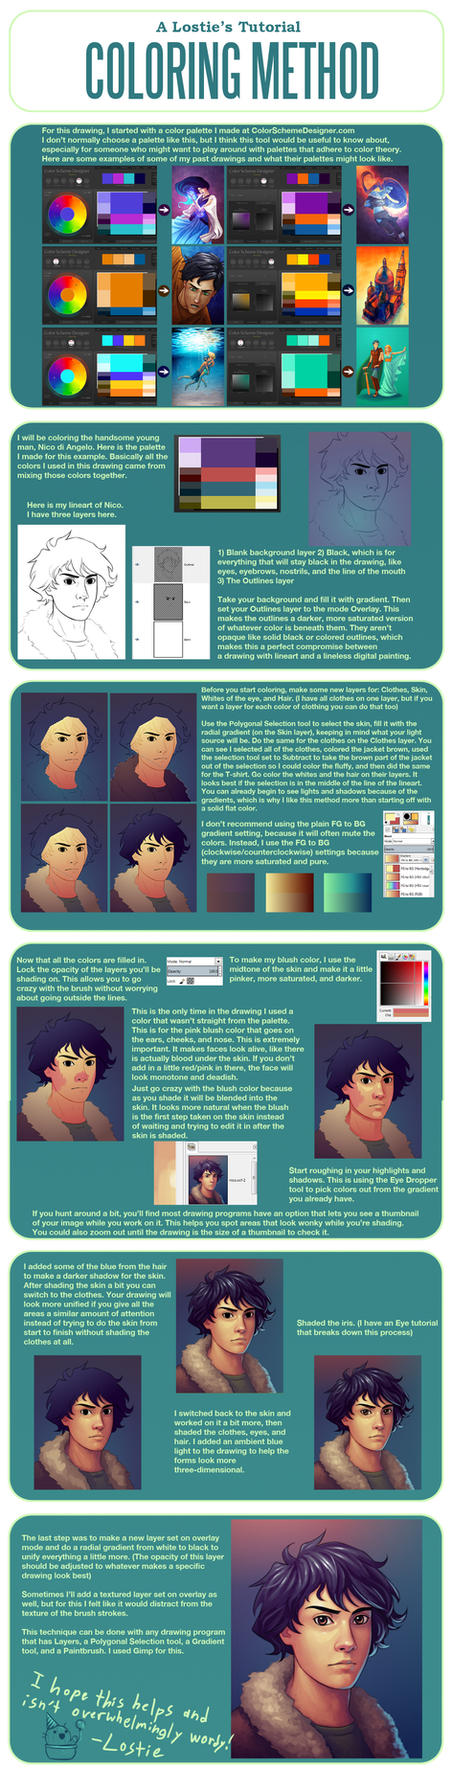 A Lostie's Tutorial - Coloring Method by lostie815